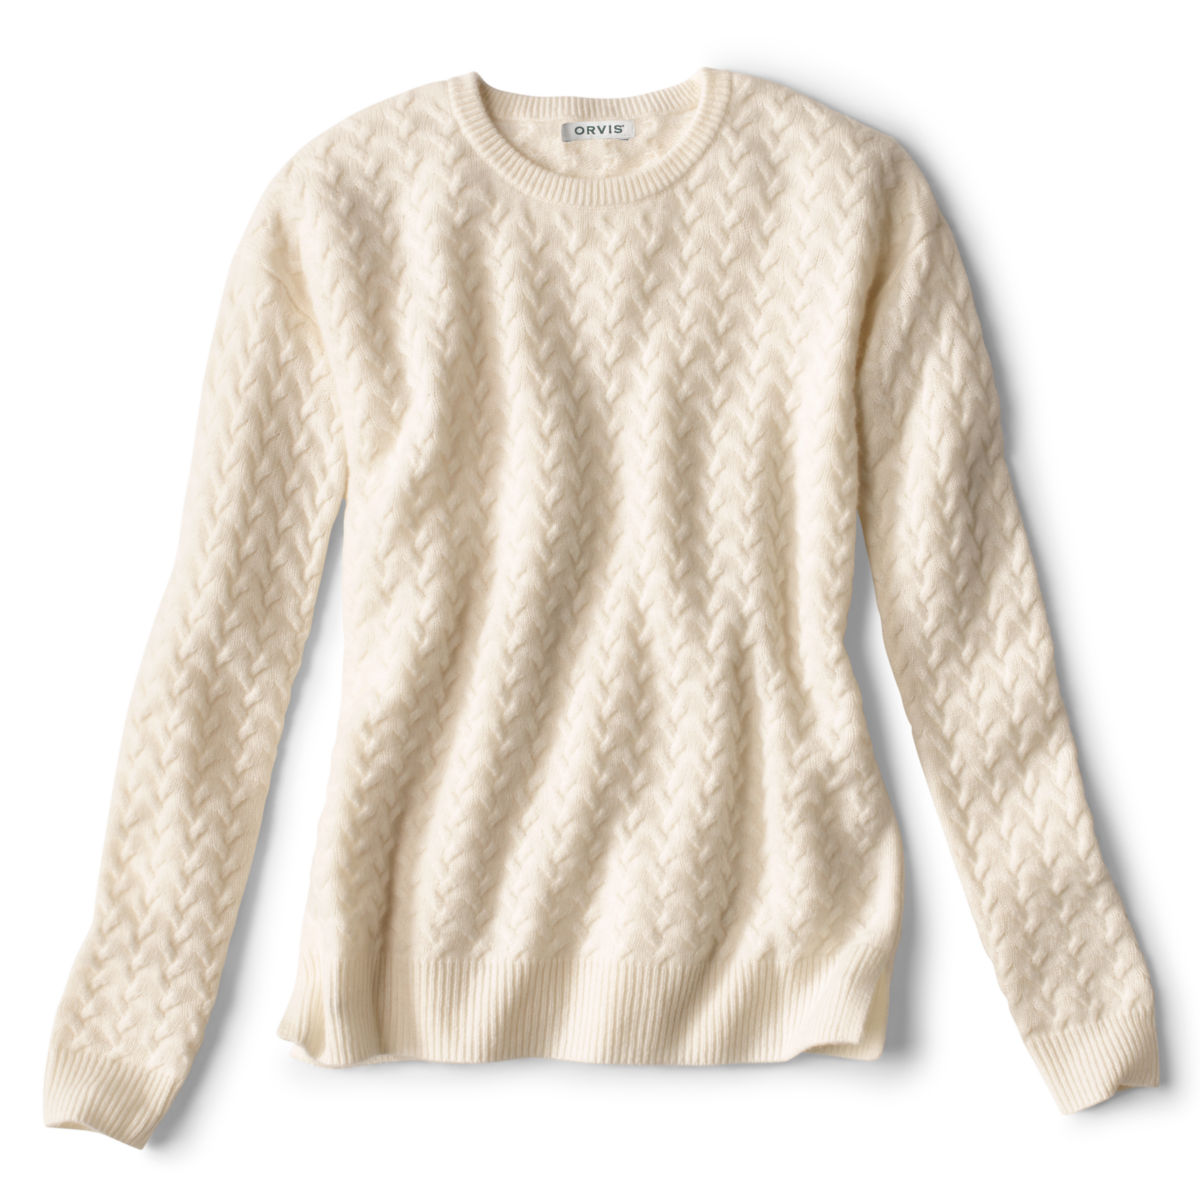 Cashmere Cable Crewneck Sweater - SNOWimage number 0